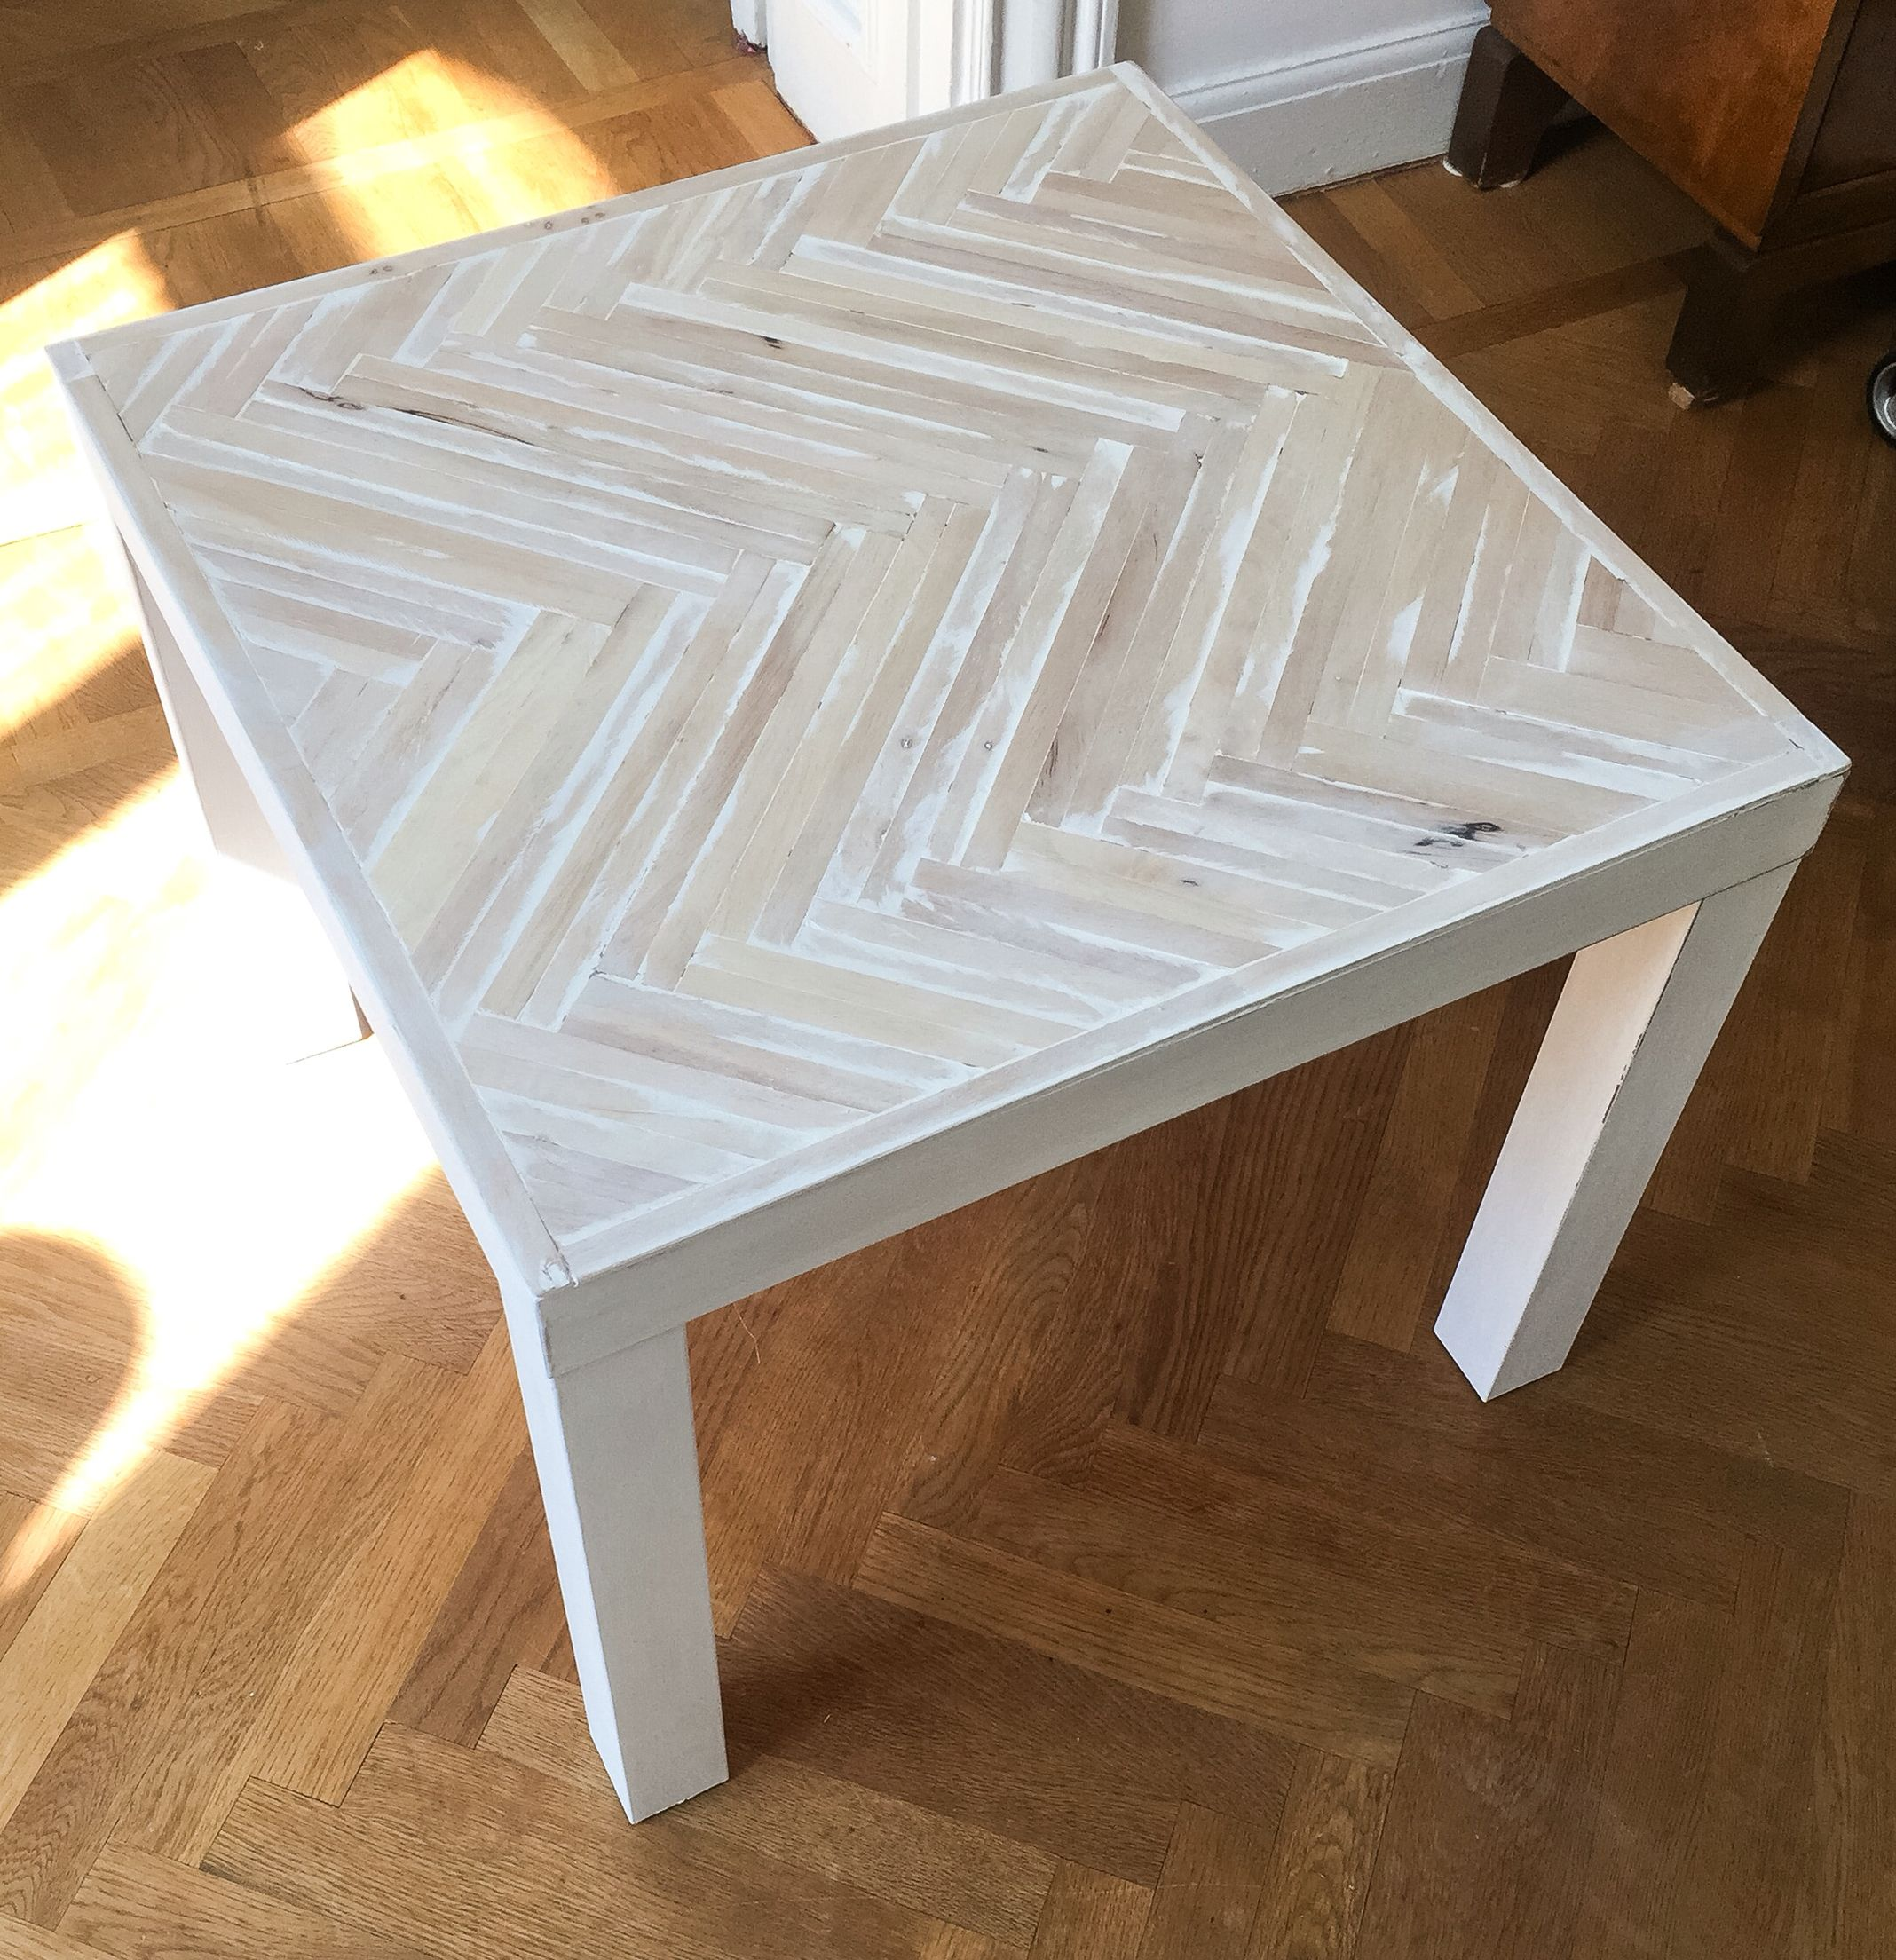 ikea lack hack fishbone table top authentico chalk paint ikea fishbone diy diy. Black Bedroom Furniture Sets. Home Design Ideas